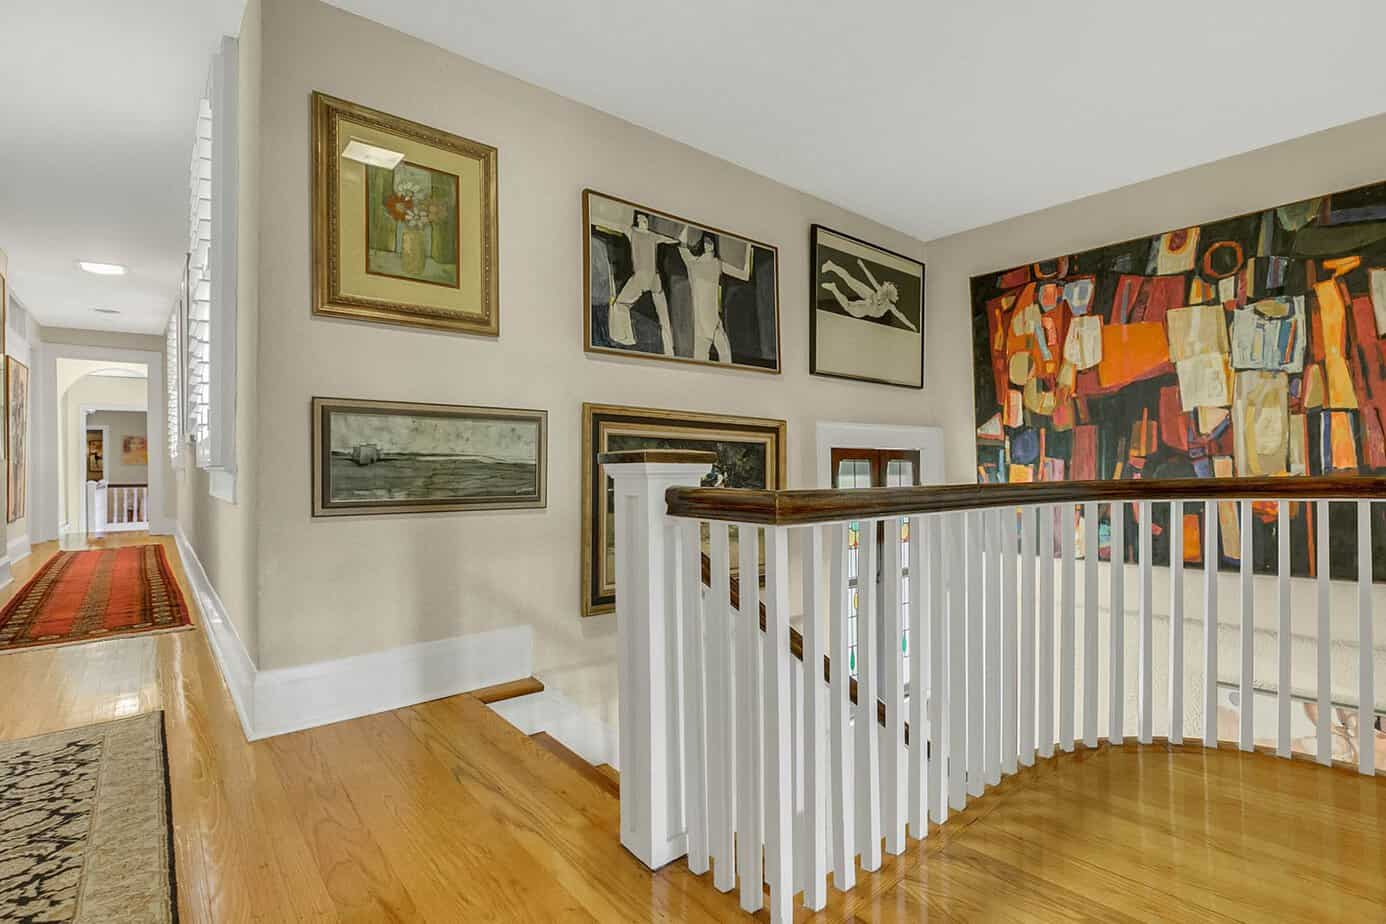 Landing for the front staircase with wood floods, artwork, decorative rugs and white spindles for the home for sale at 4024 W Bay to Bay Tampa FL 33629